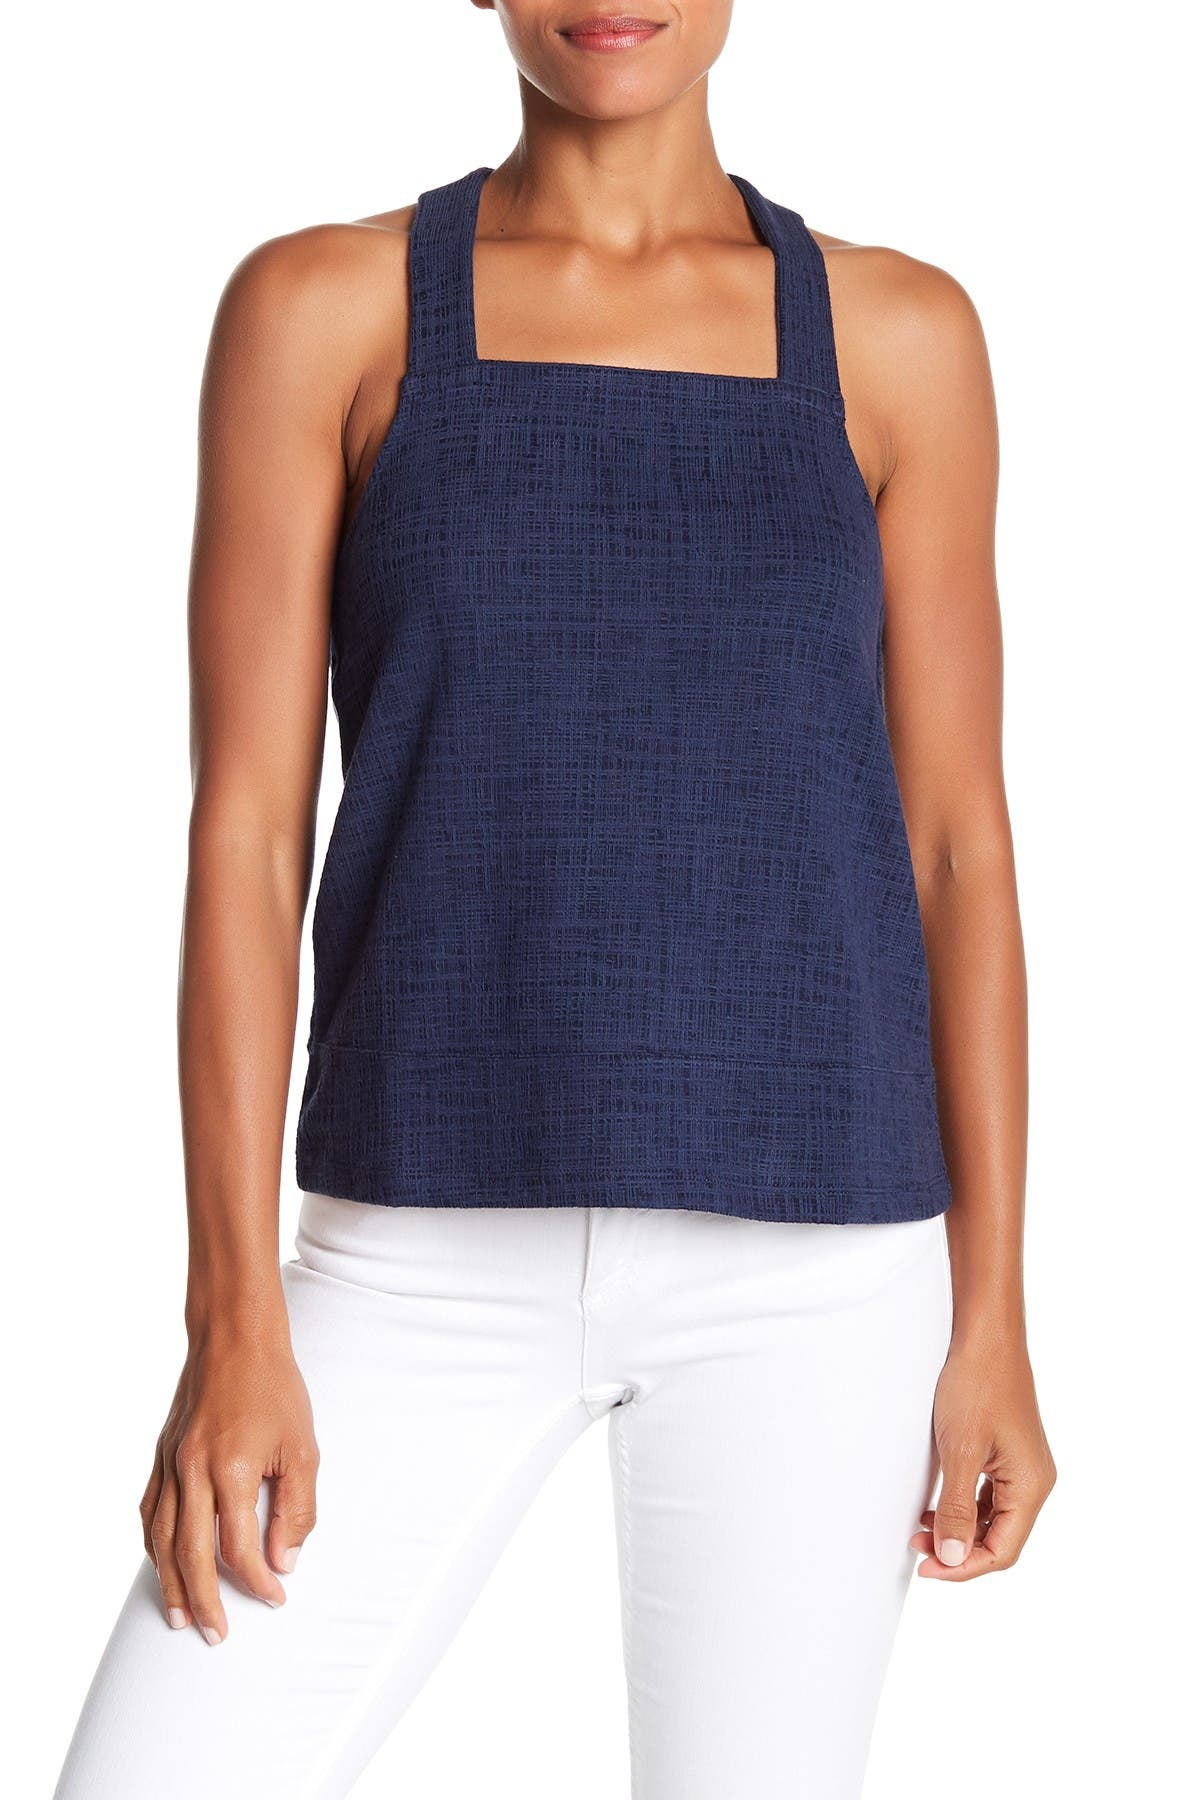 Image of Madewell Textured Knit Apron Tank Top